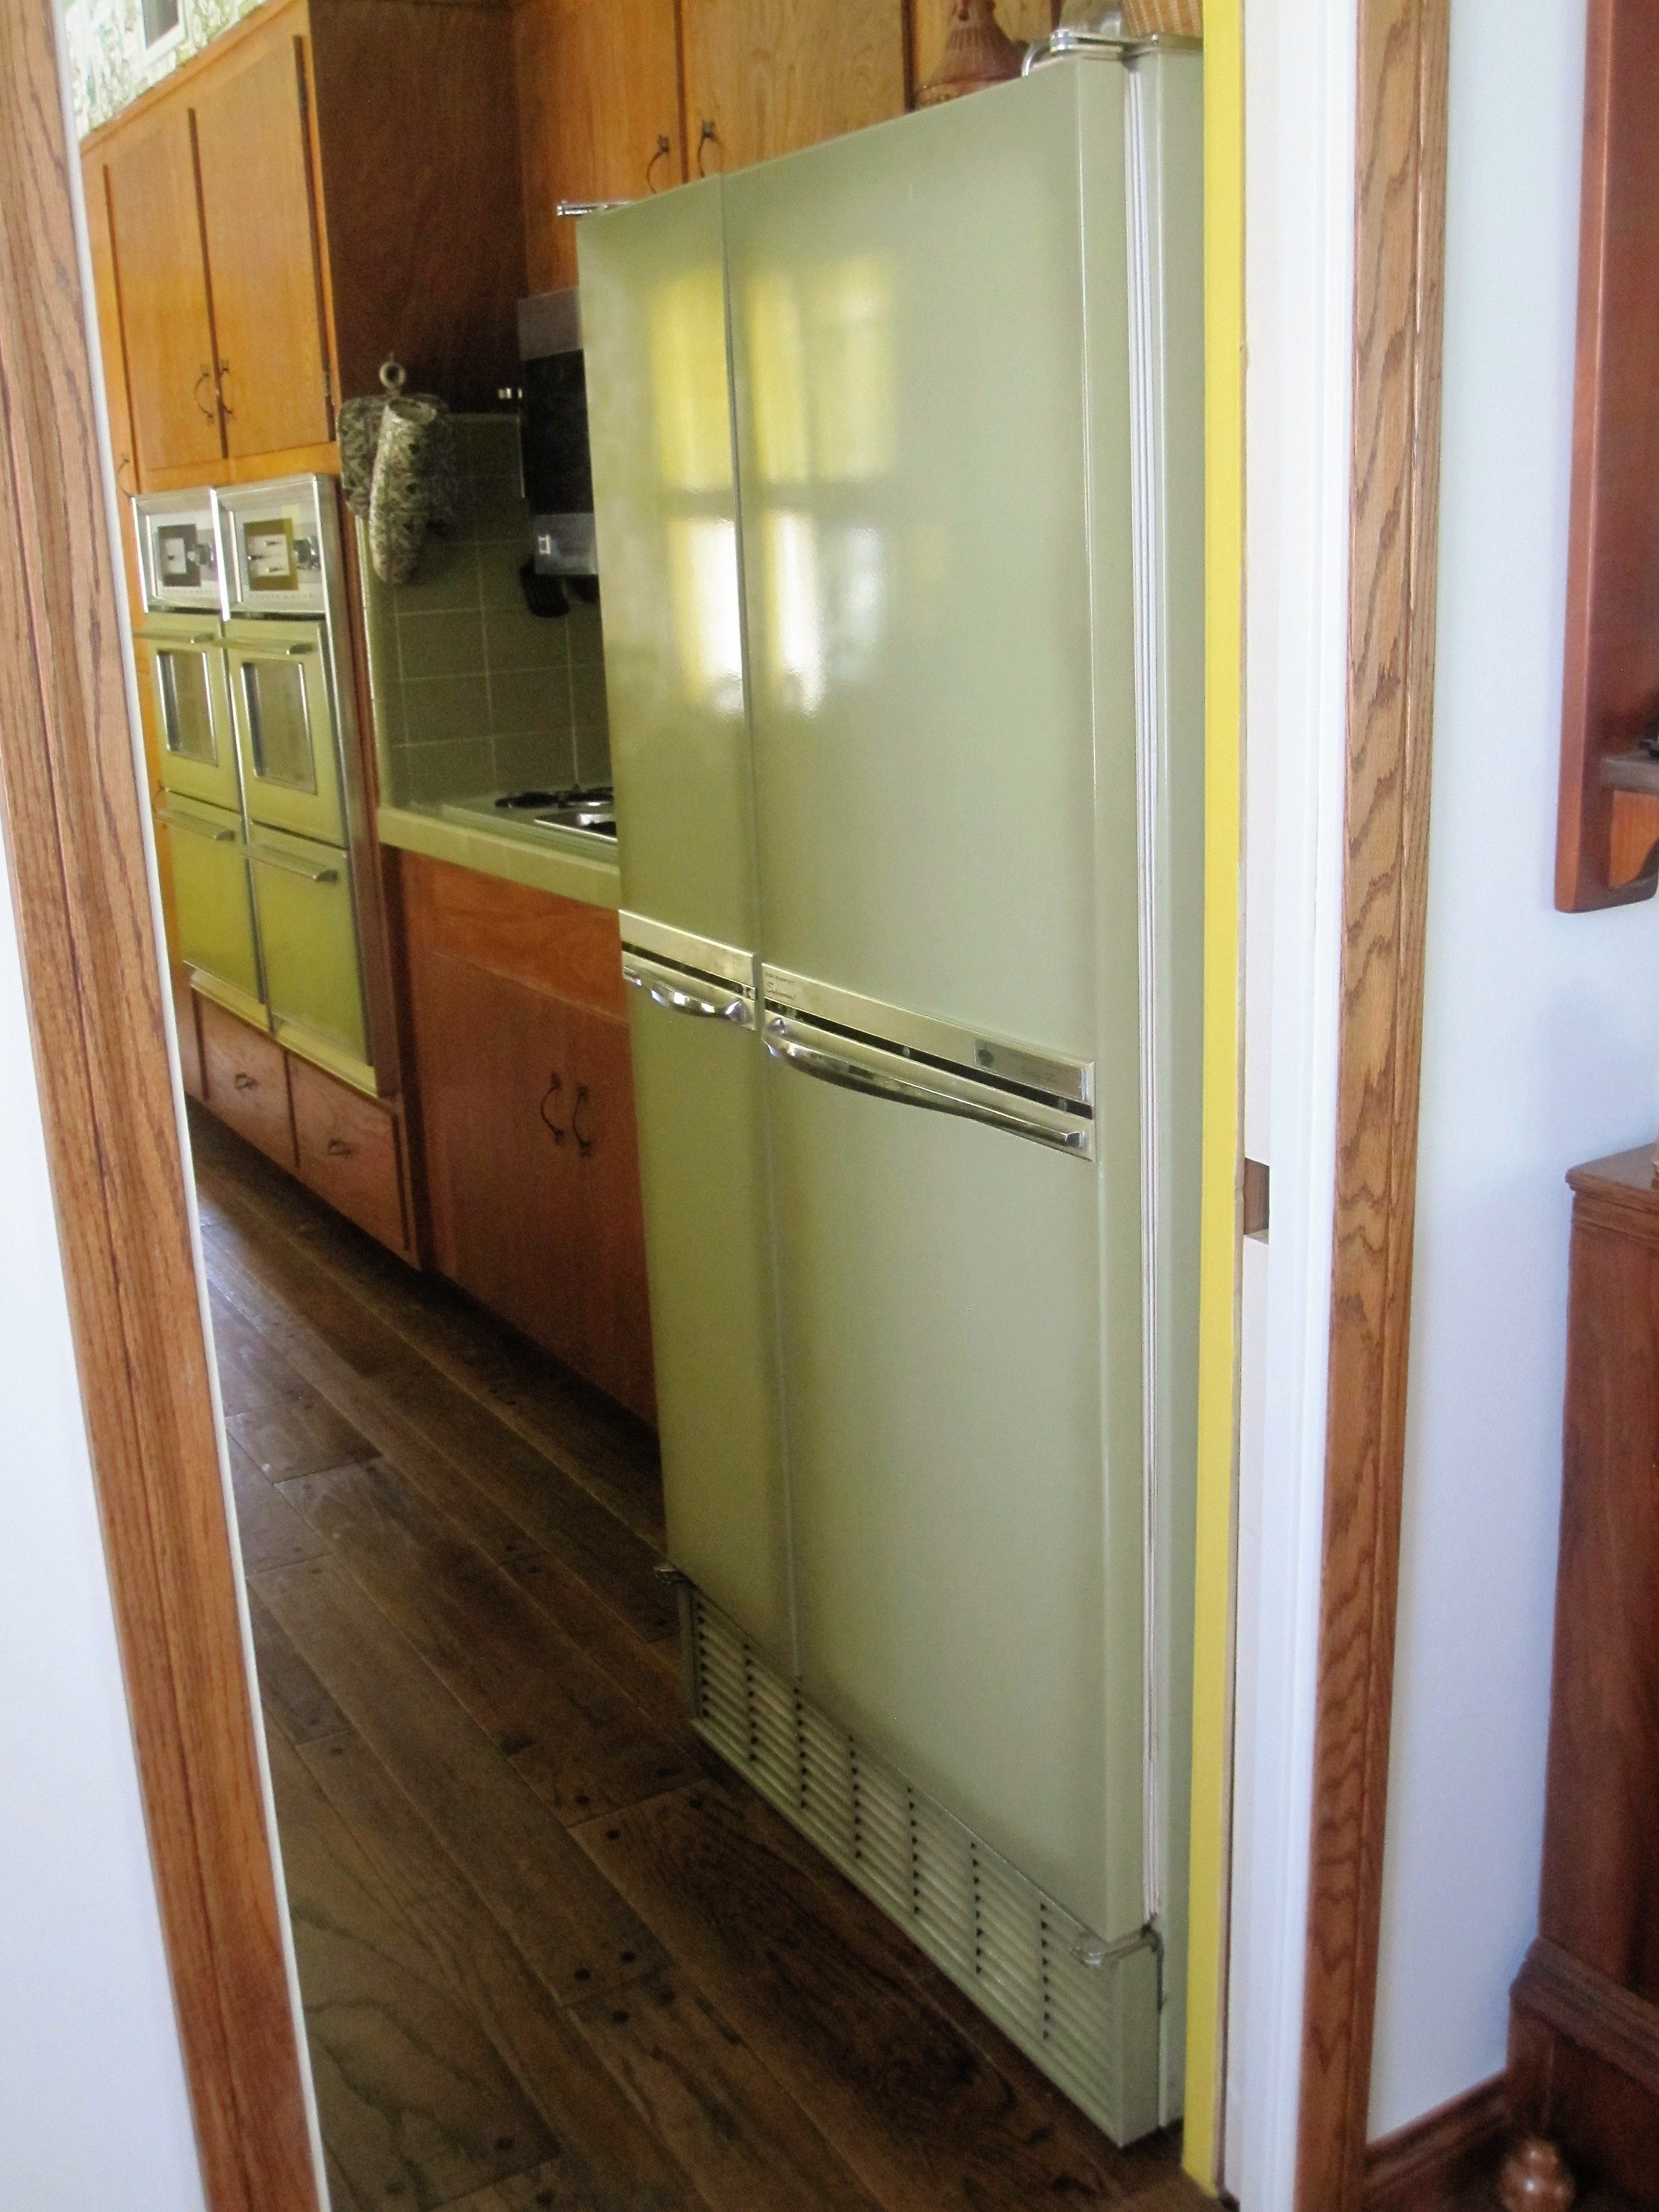 Sears Appliance Reviews Top 823 Reviews And Complaints About Sears Appliance Refrigerators